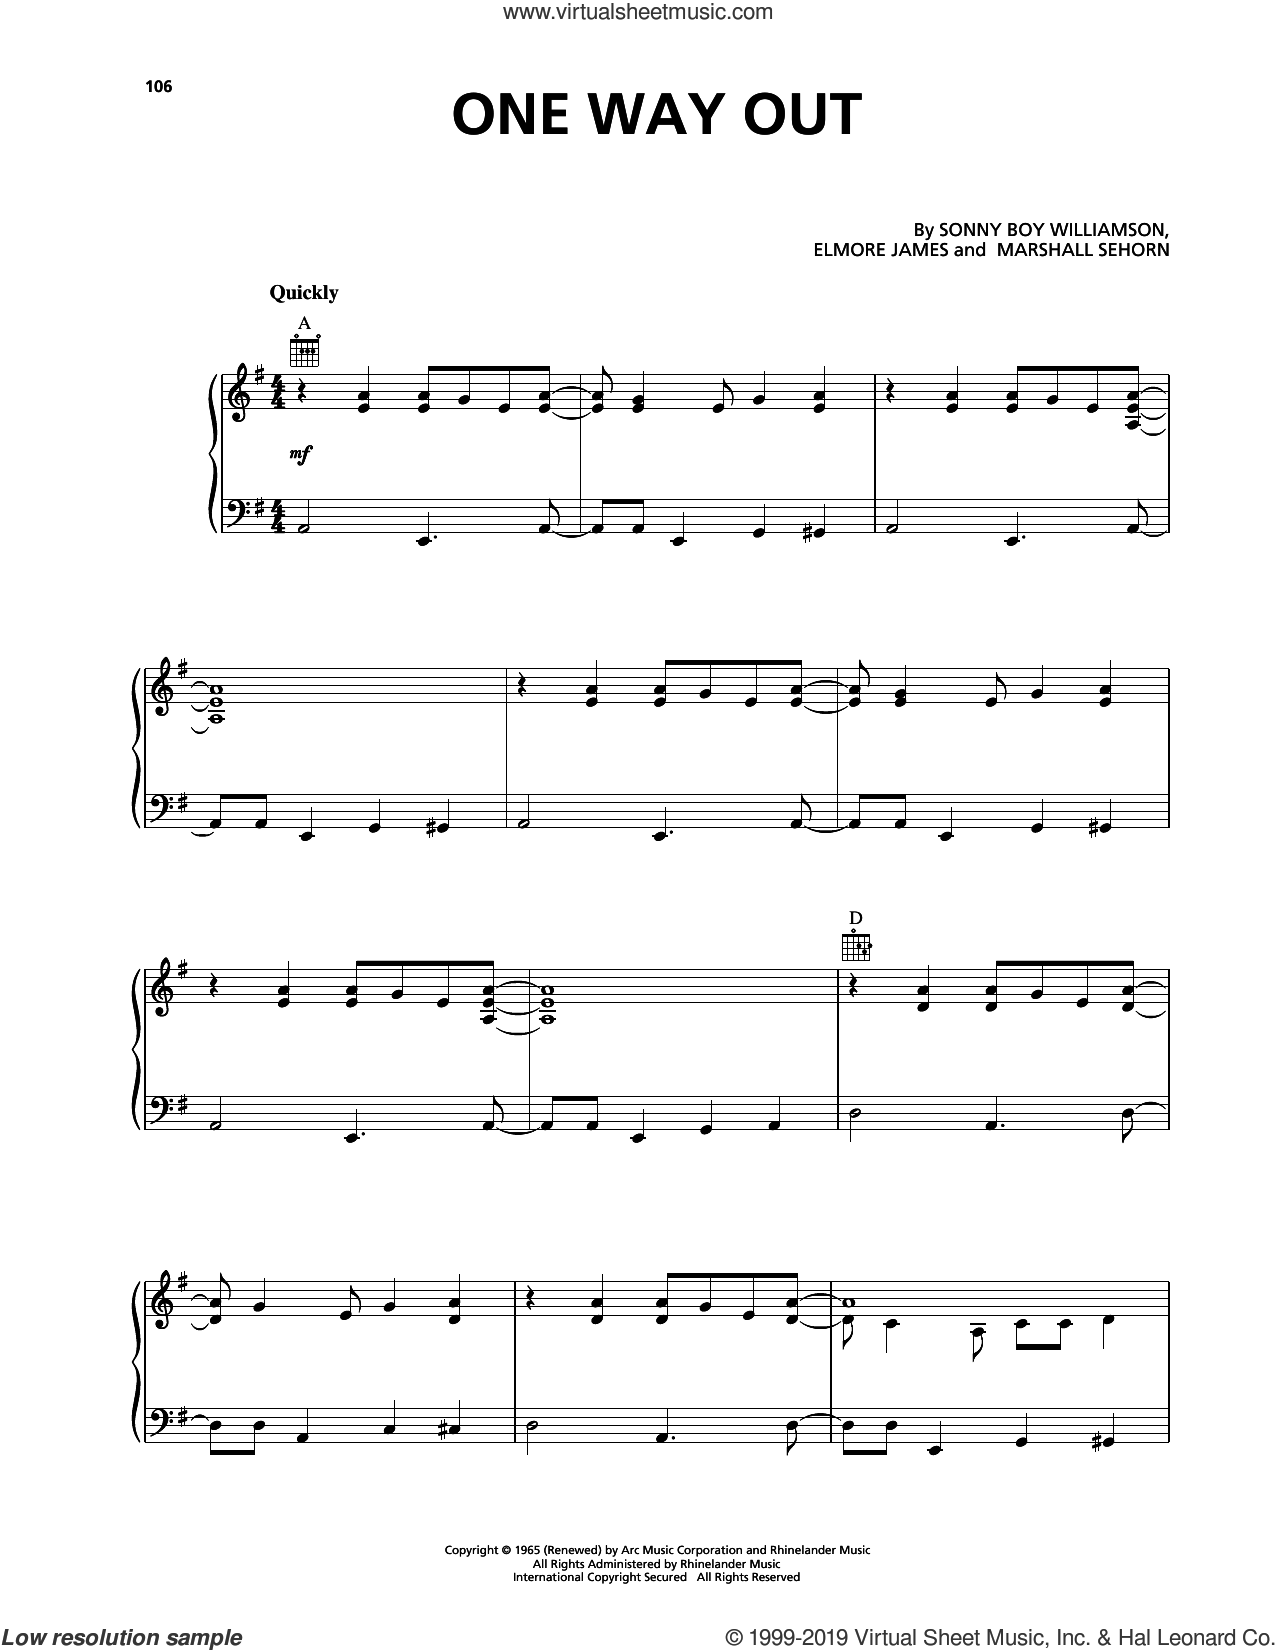 One Way Out sheet music for voice, piano or guitar by The Allman Brothers Band, Elmore James, Marshall Sehorn and Willie Williamson, intermediate skill level